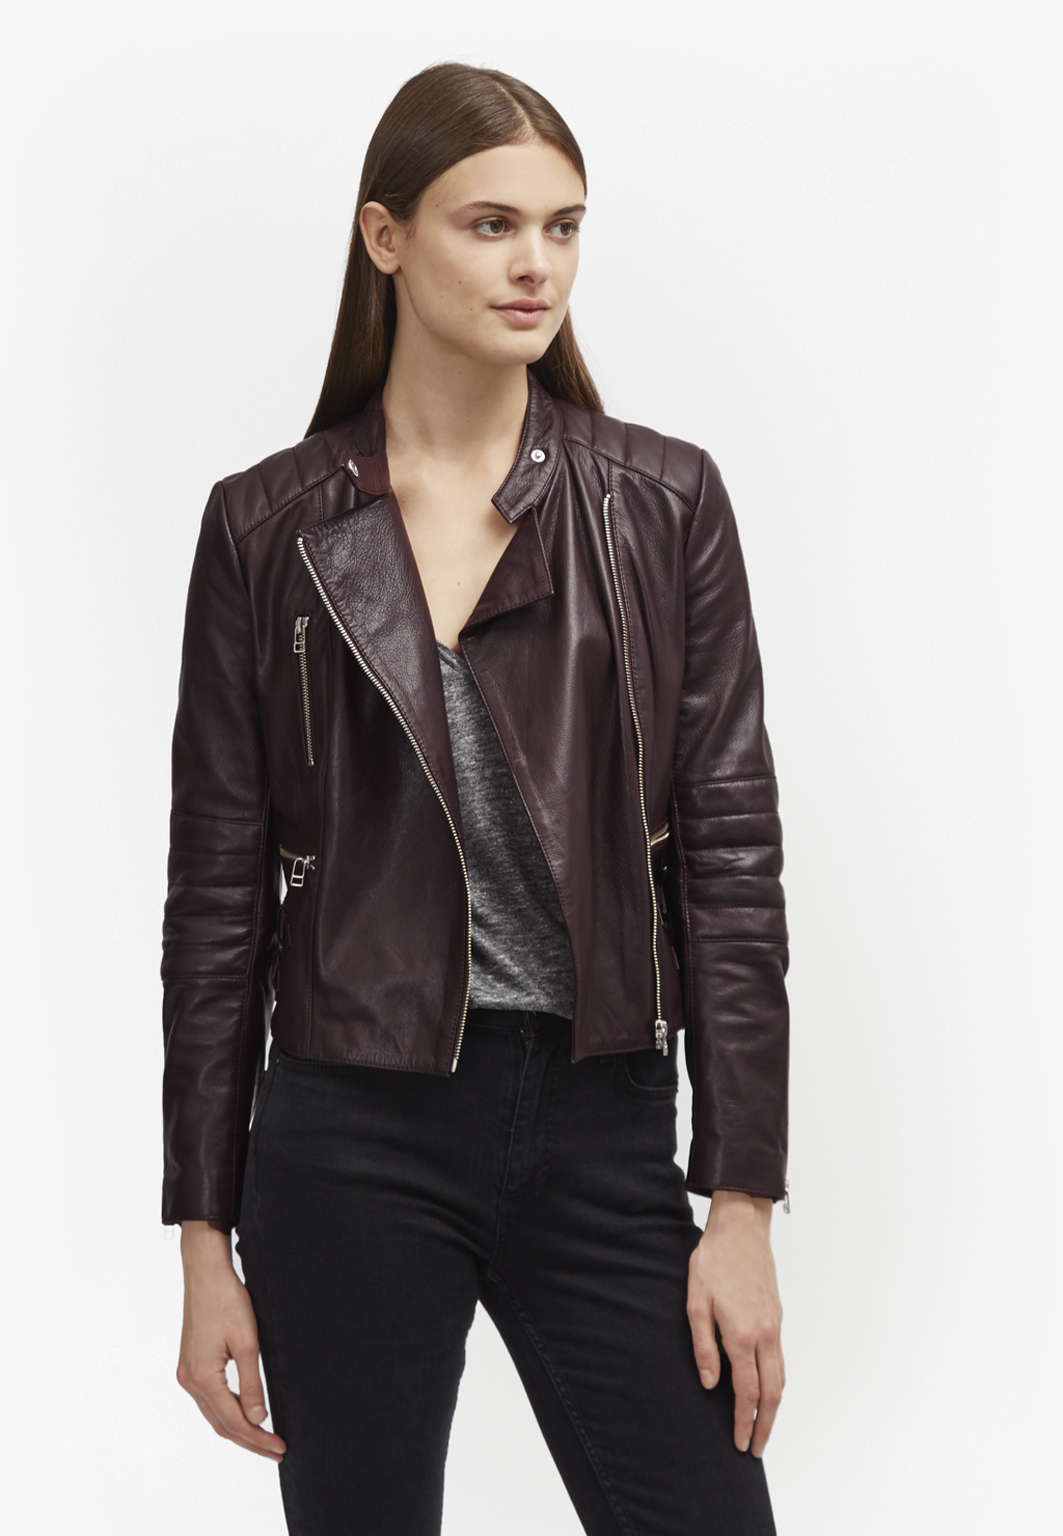 French connection leather jackets